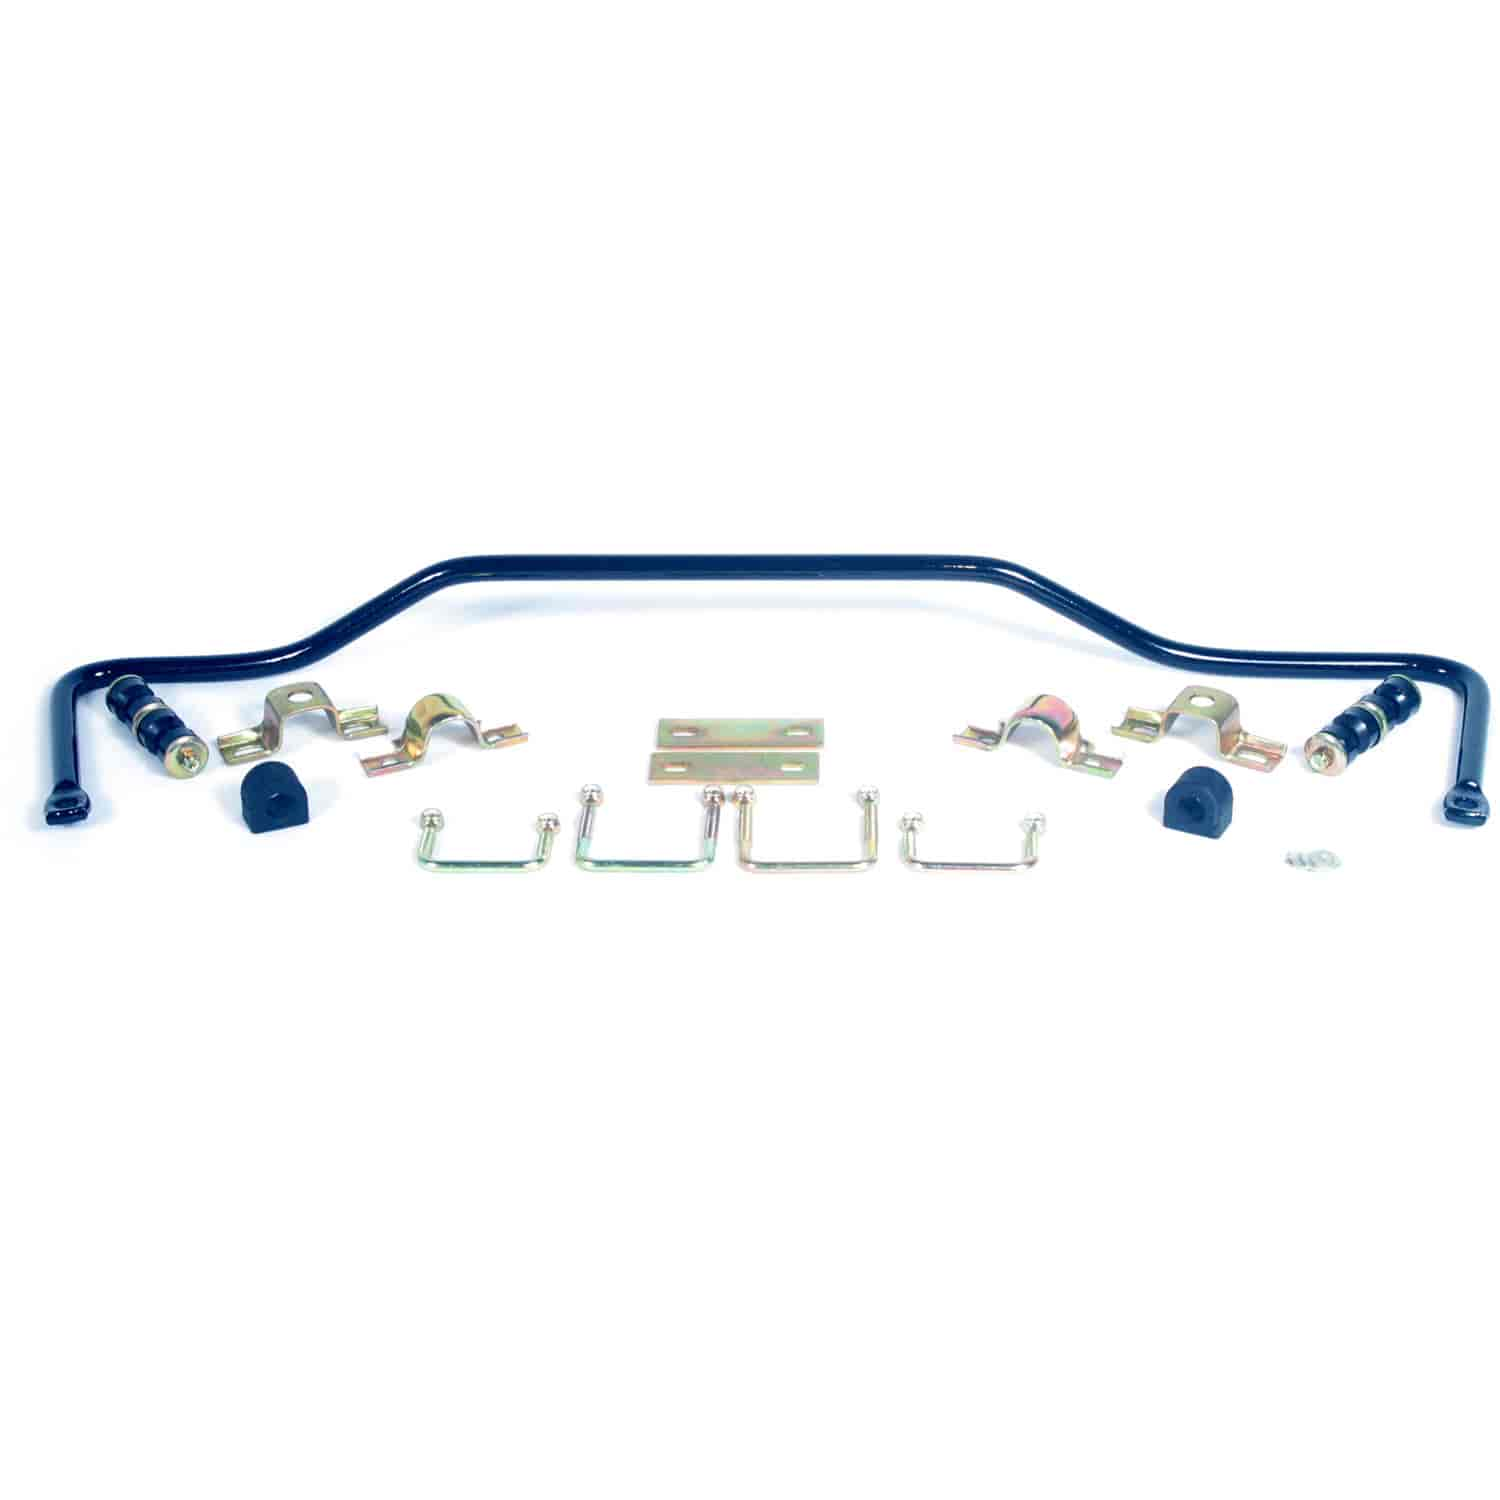 ADDCO 260 - ADDCO Jeep Sway Bars